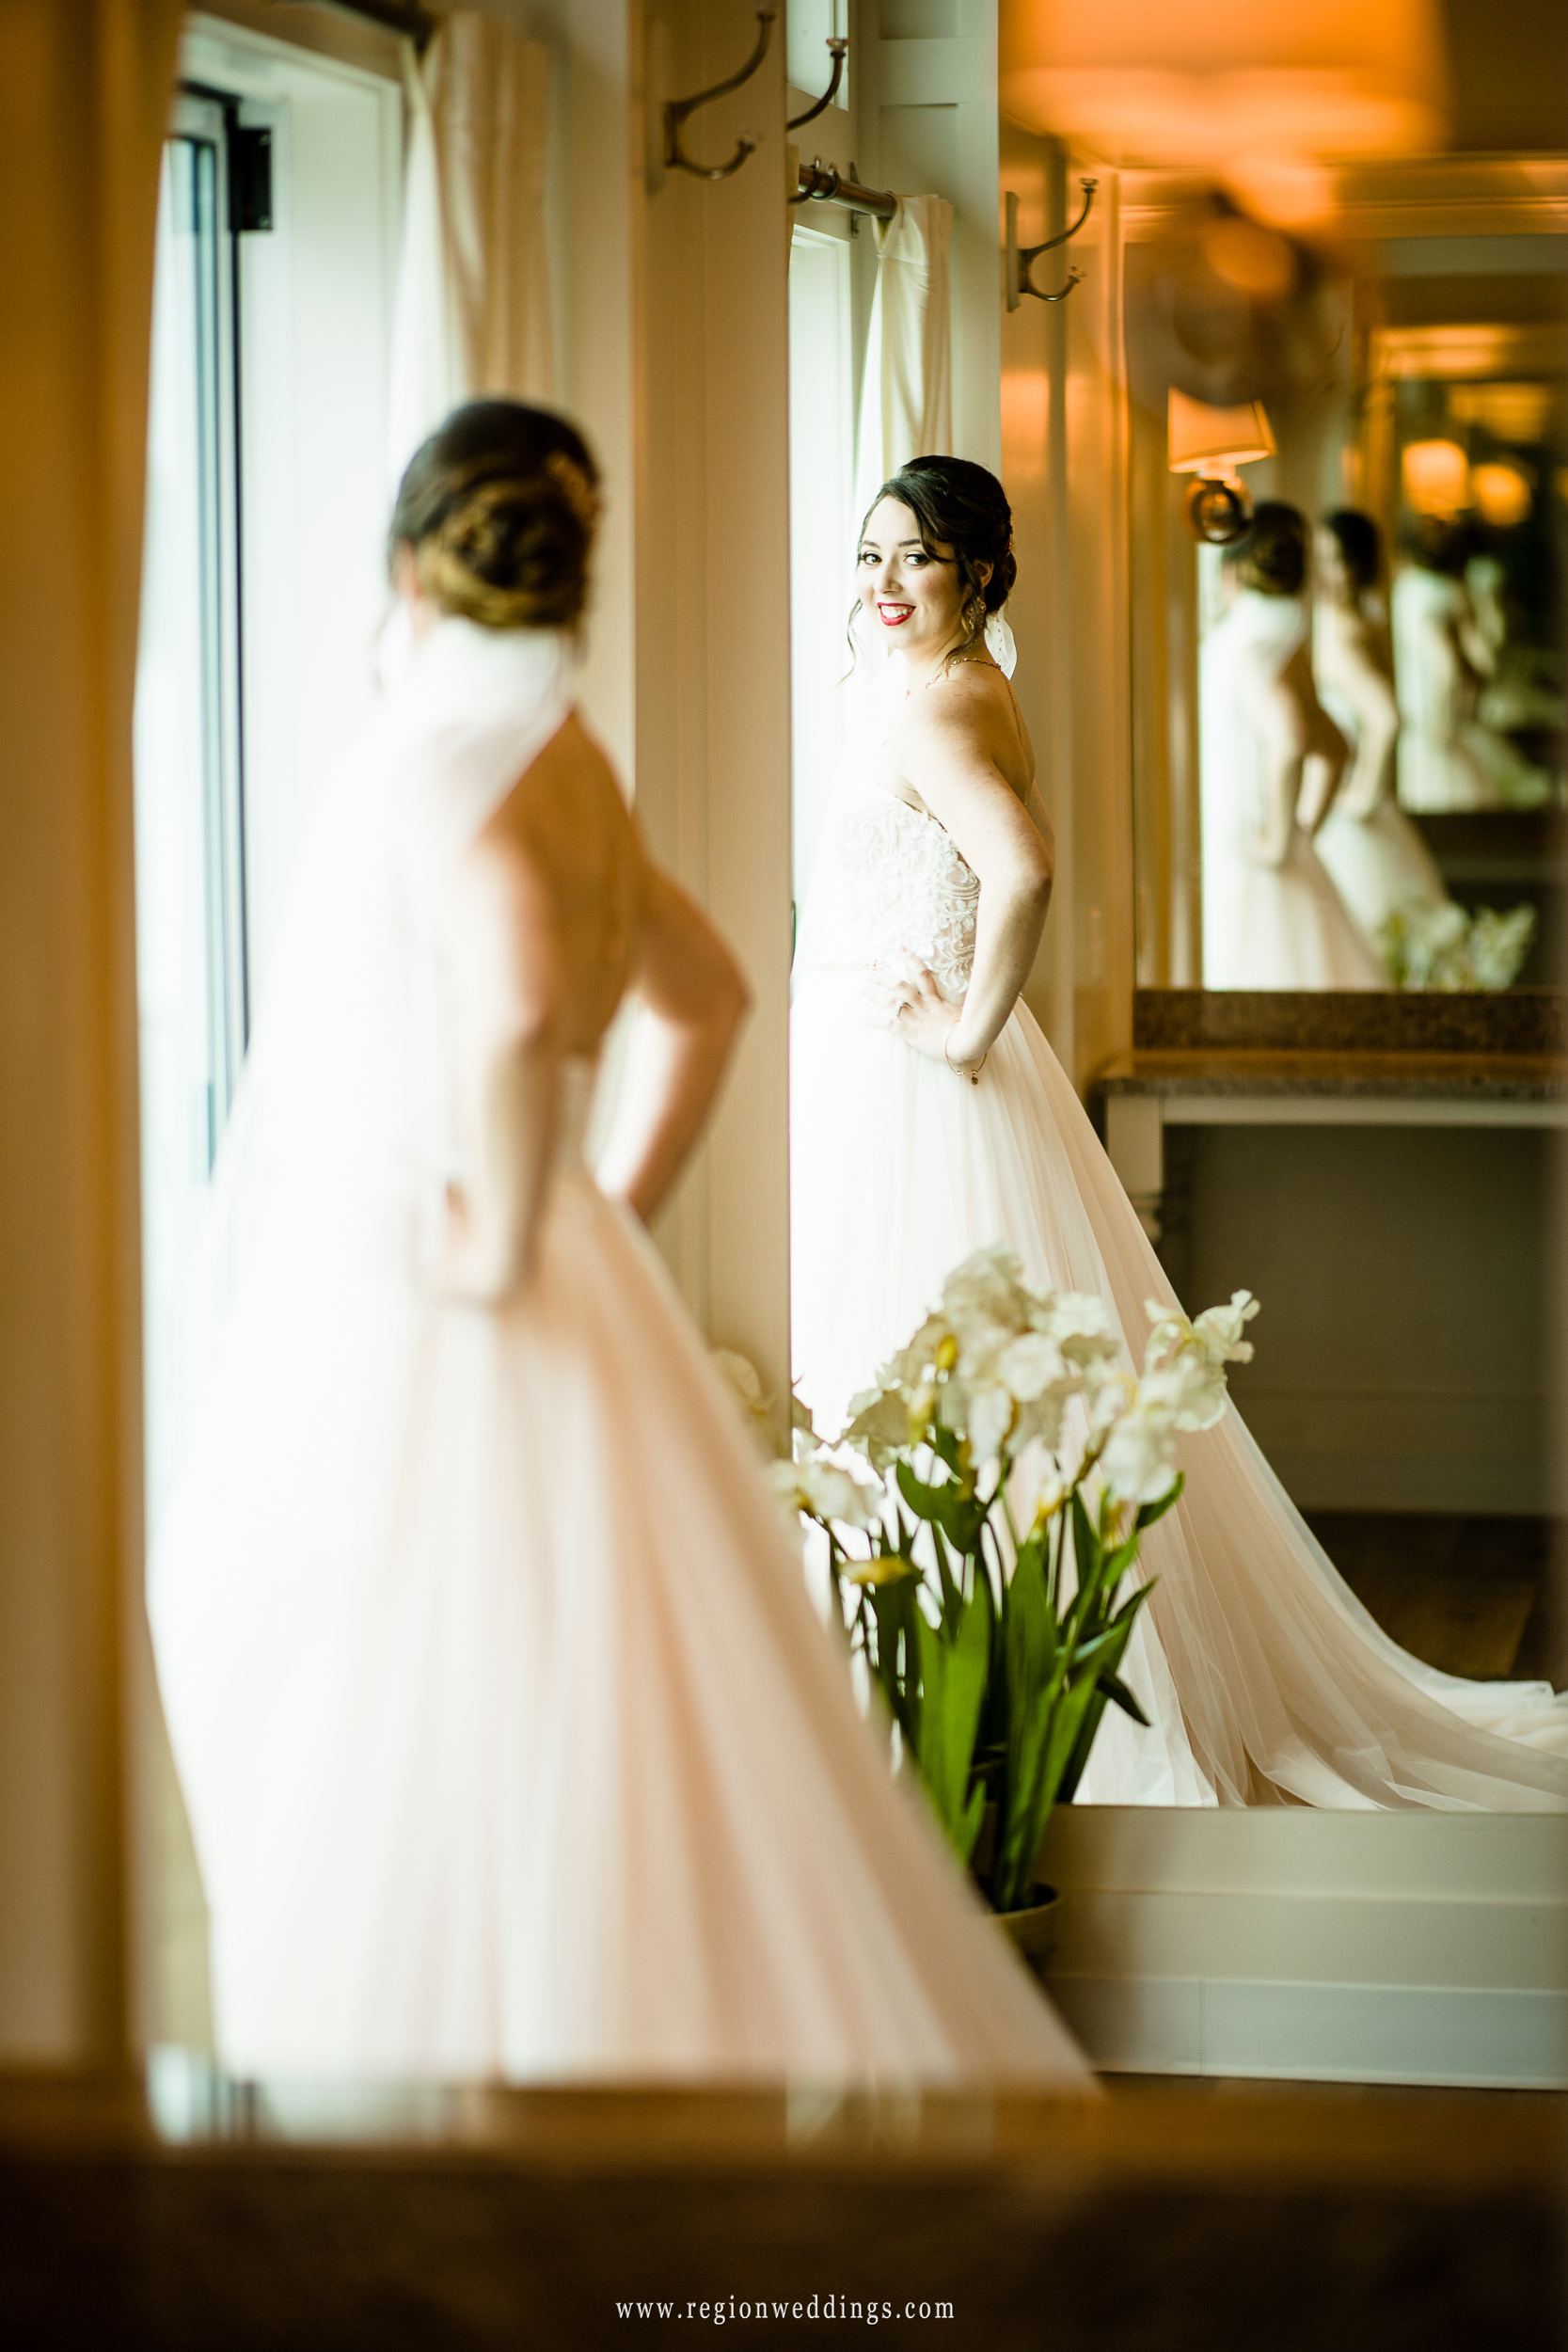 Bride in the mirror in the bridal suite at Lighthouse Restaurant.